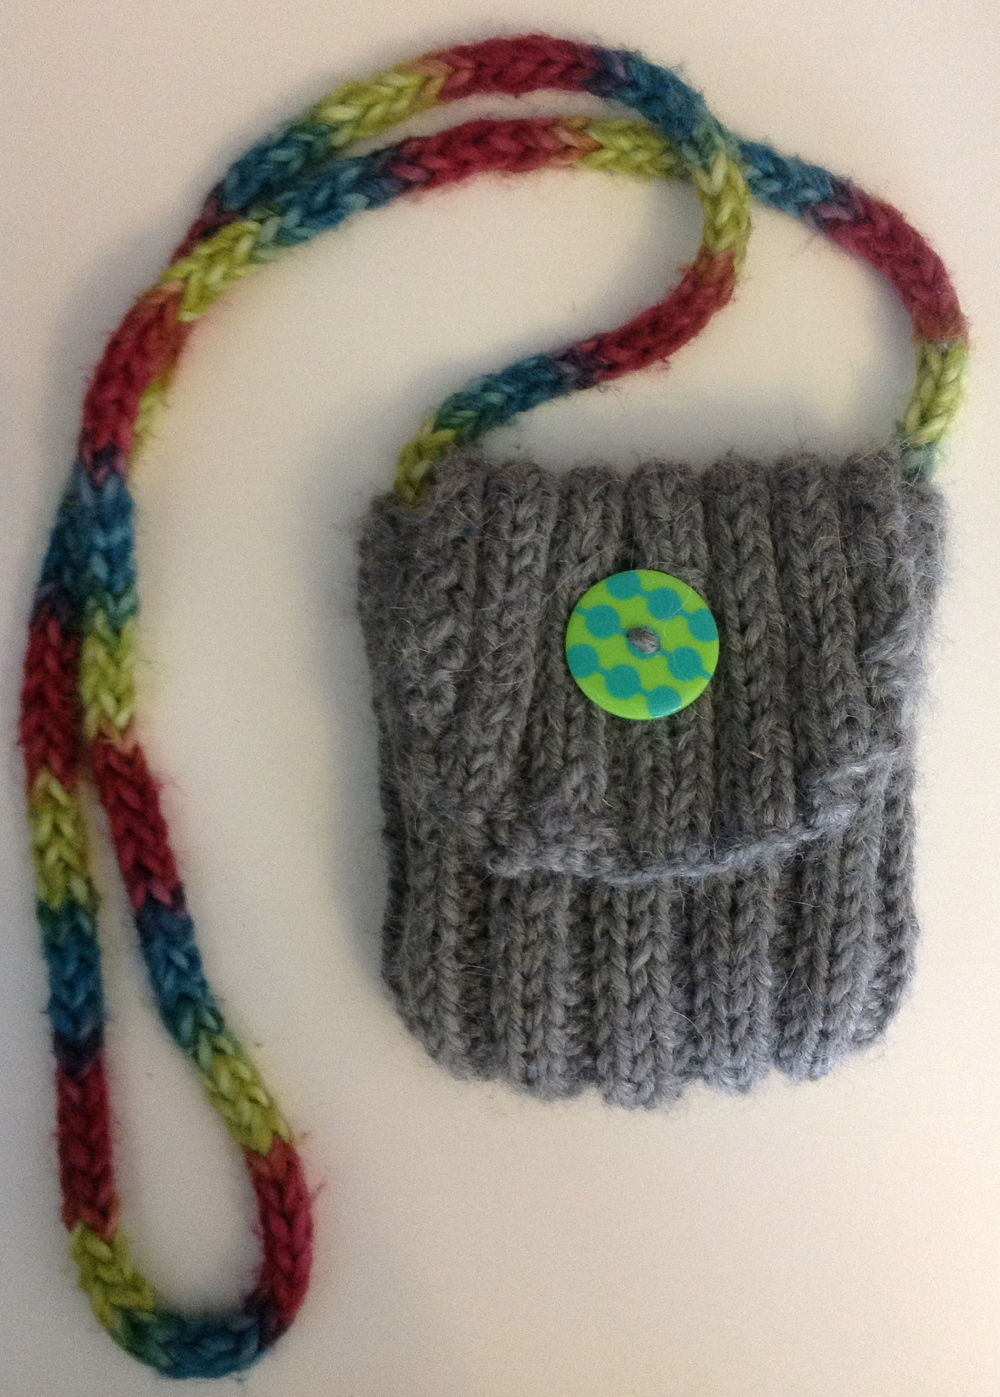 Karole Kurnow Small Knitted Bag.jpg